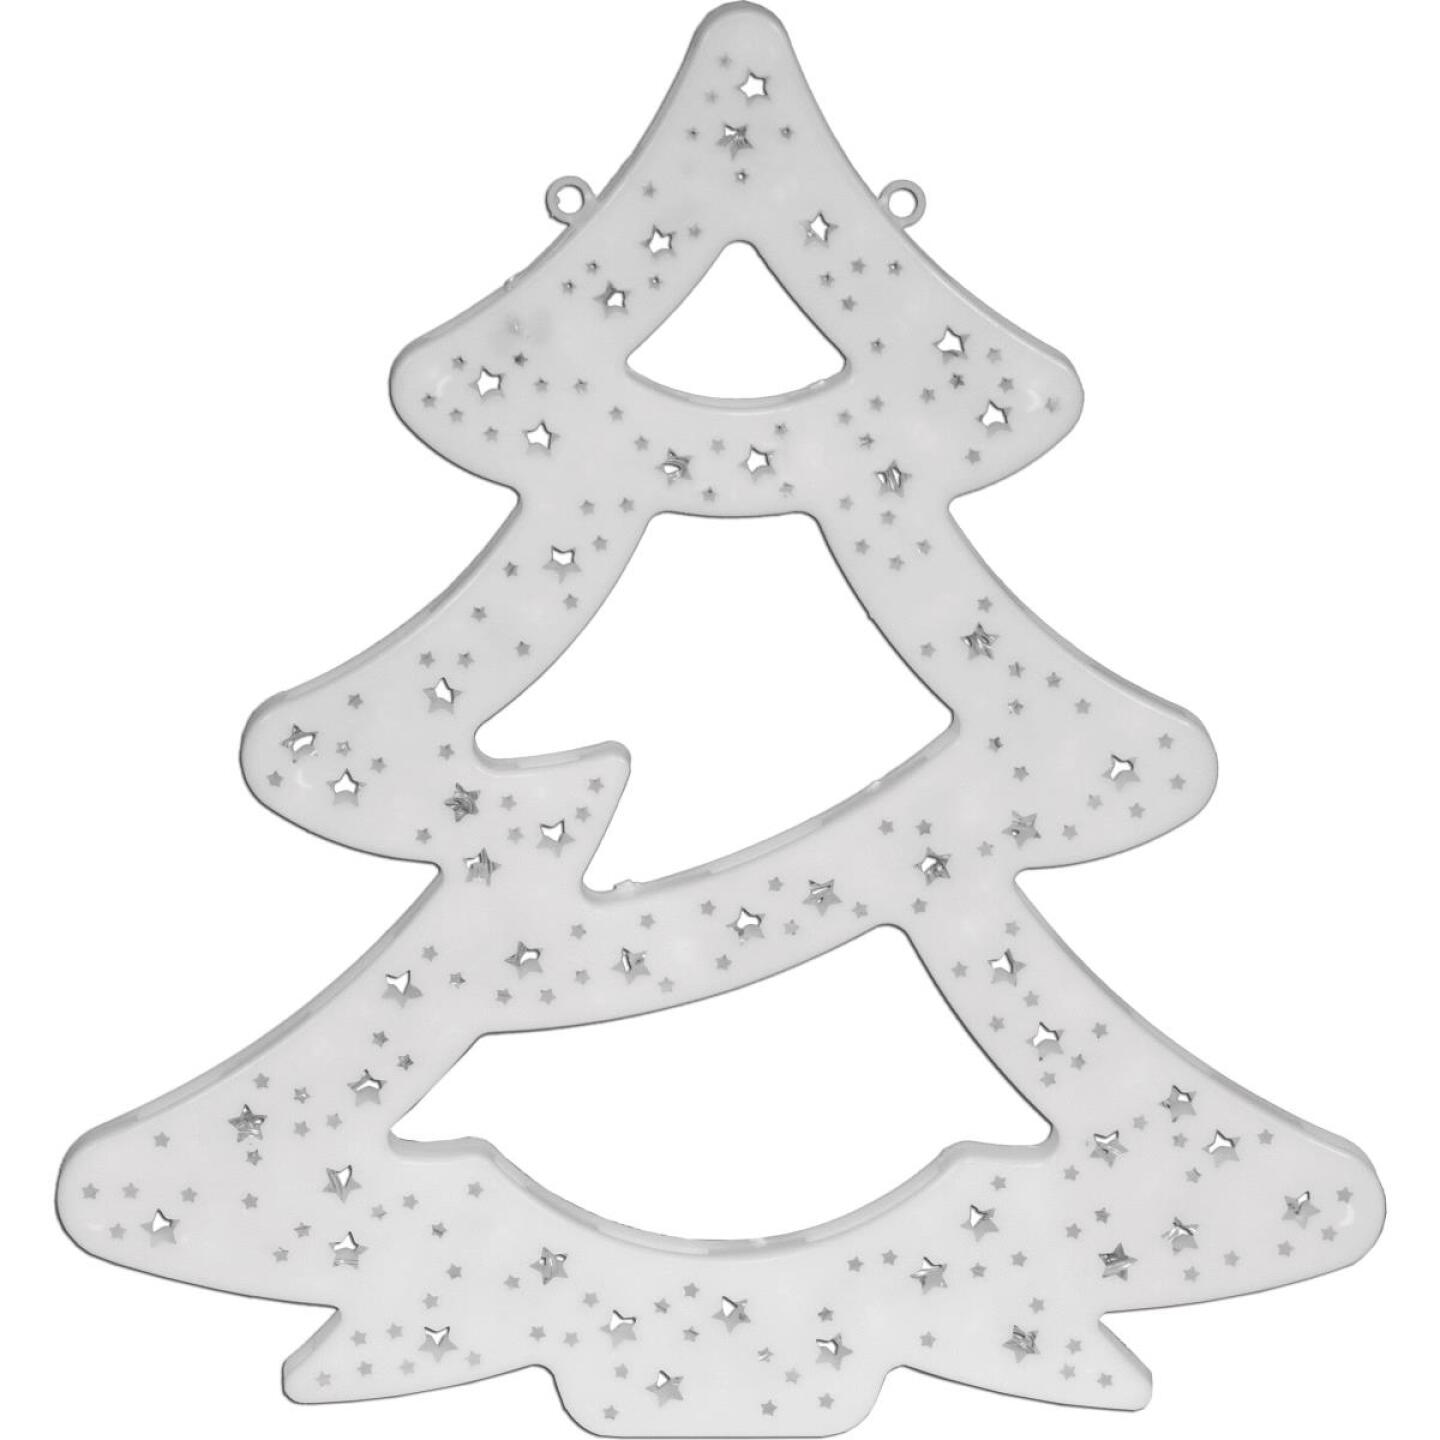 Alpine 16 In. H. Flashing Multi LED Lighted Christmas Tree Image 1